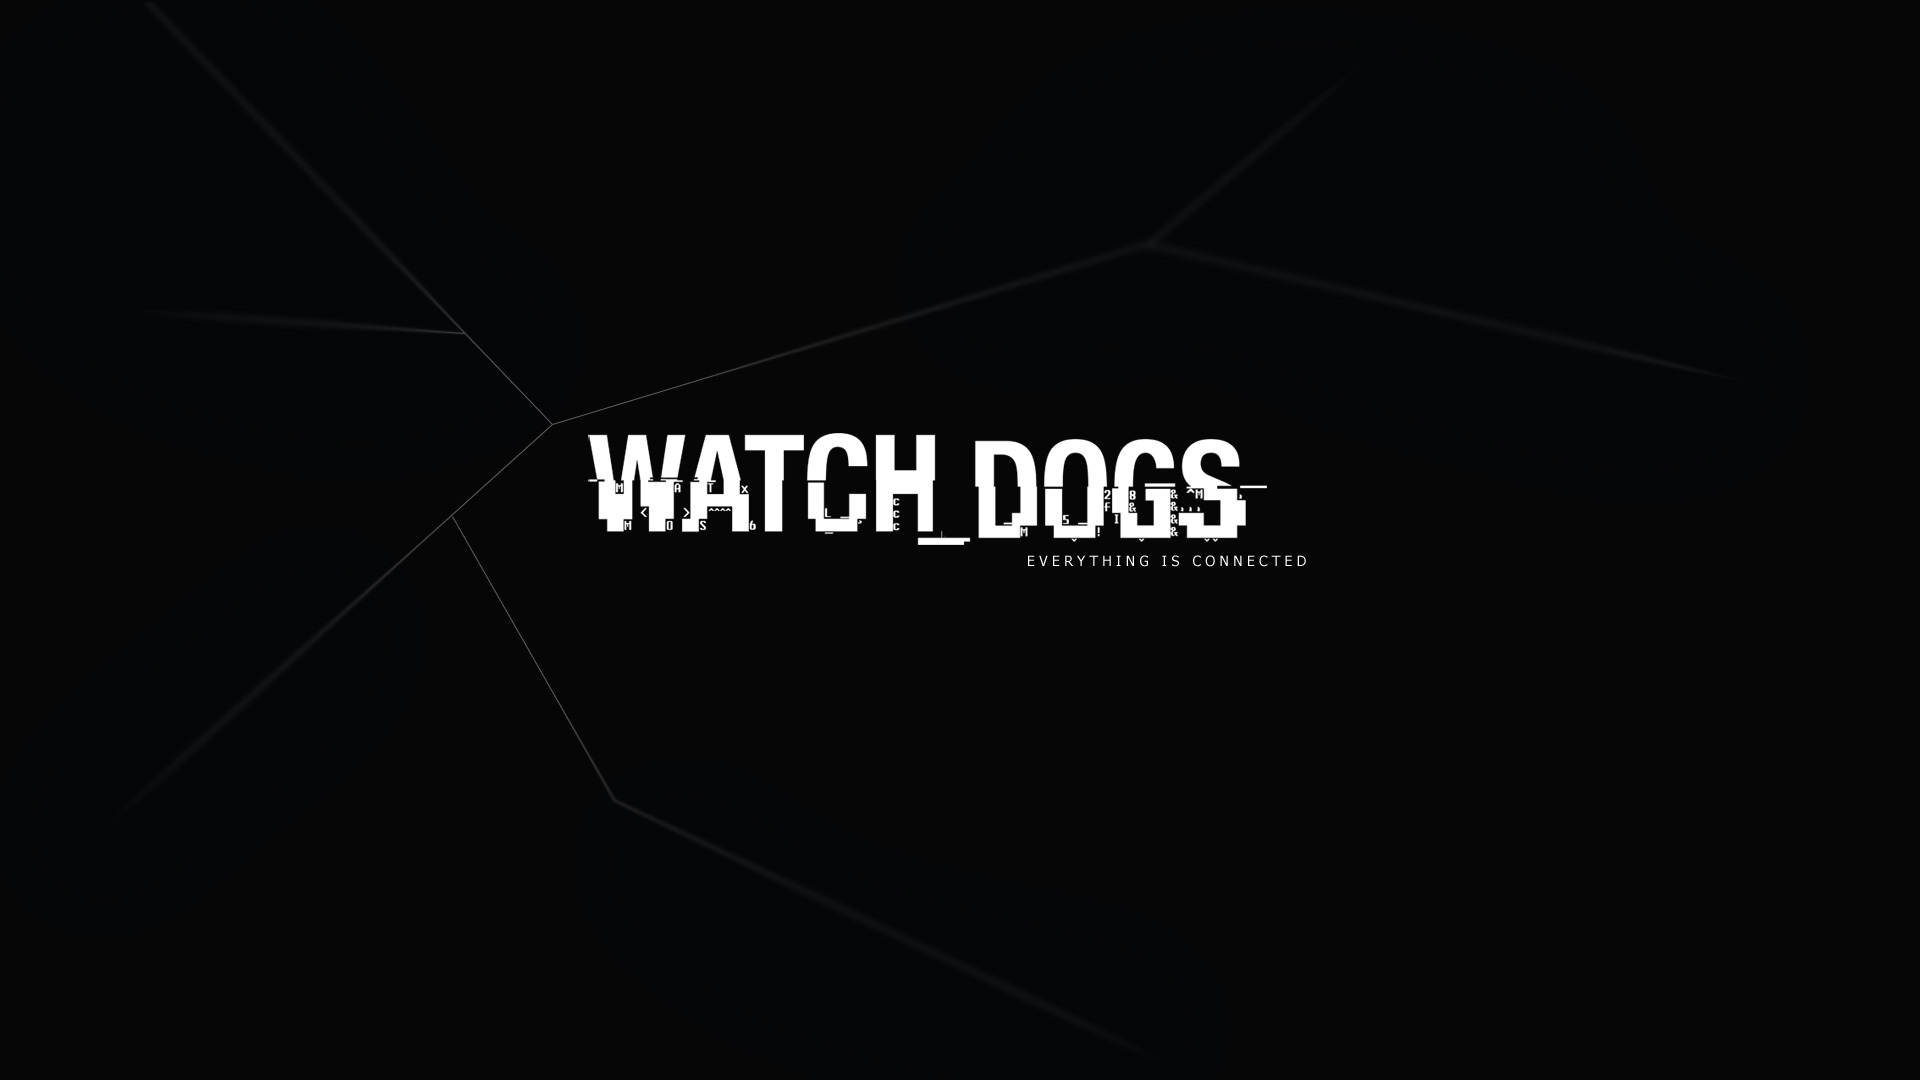 Watch Dogs Wallpaper HD Page 3 1920x1080